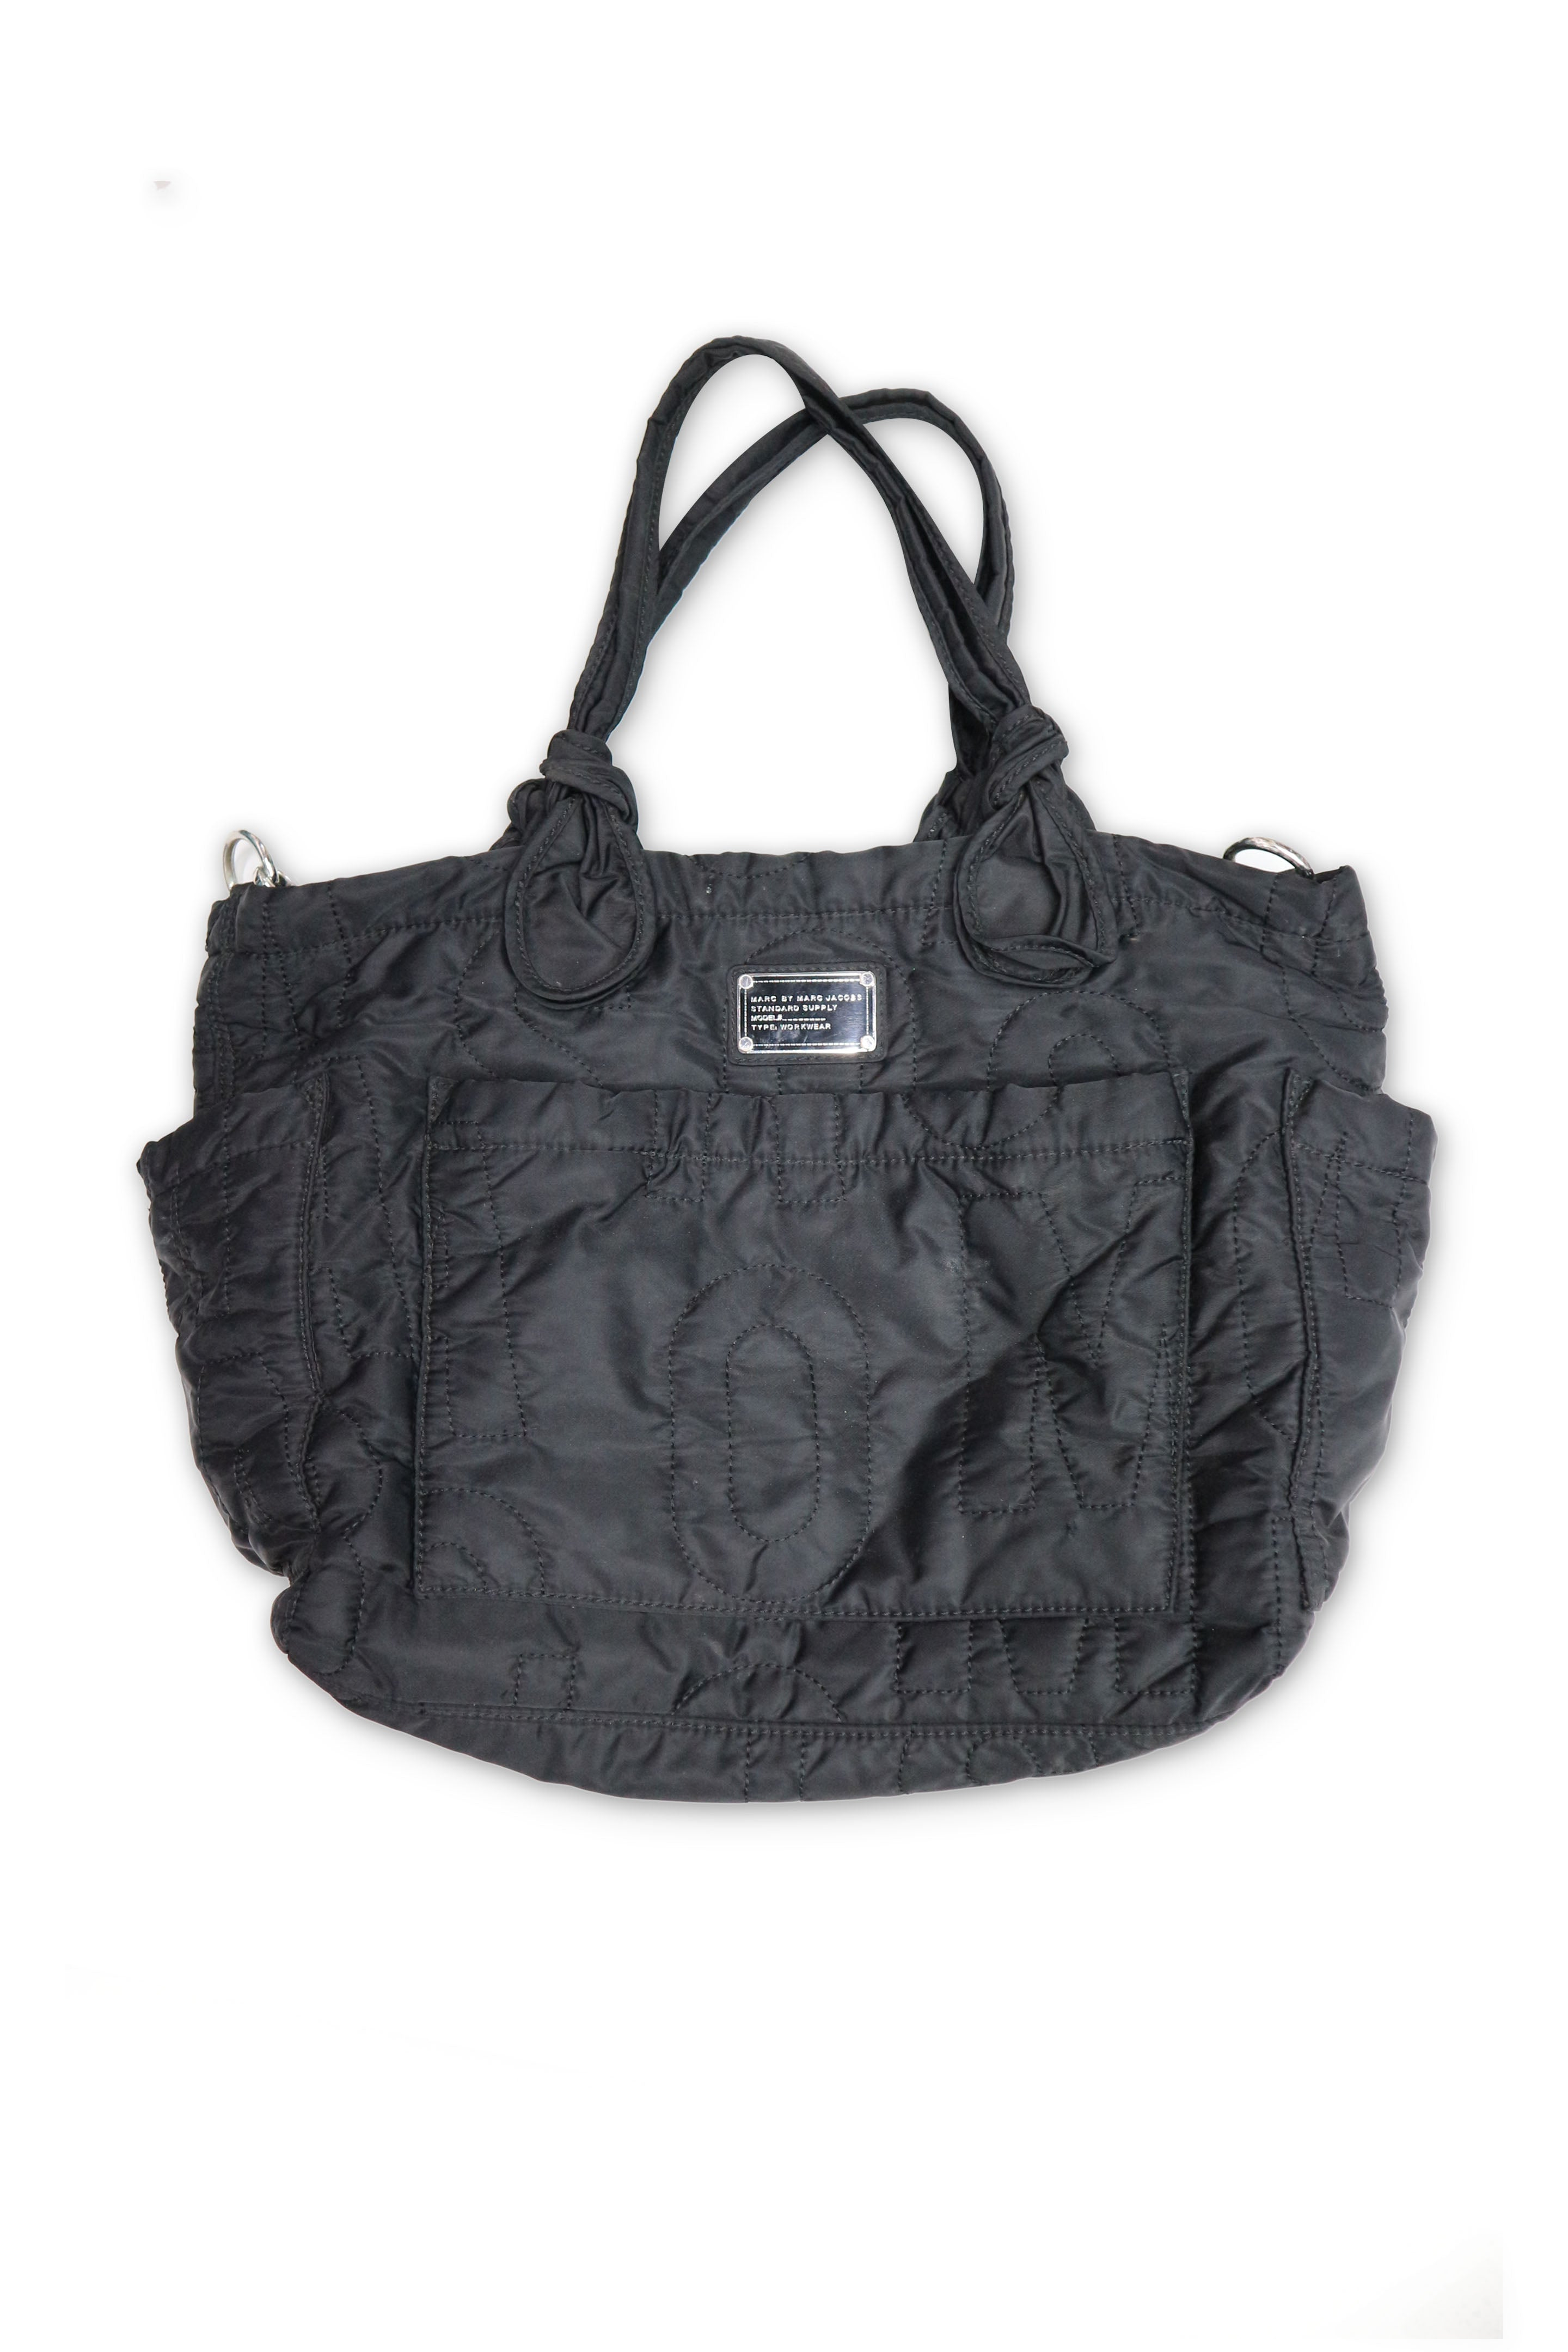 Marc Jacobs Nappy Bag size osfa